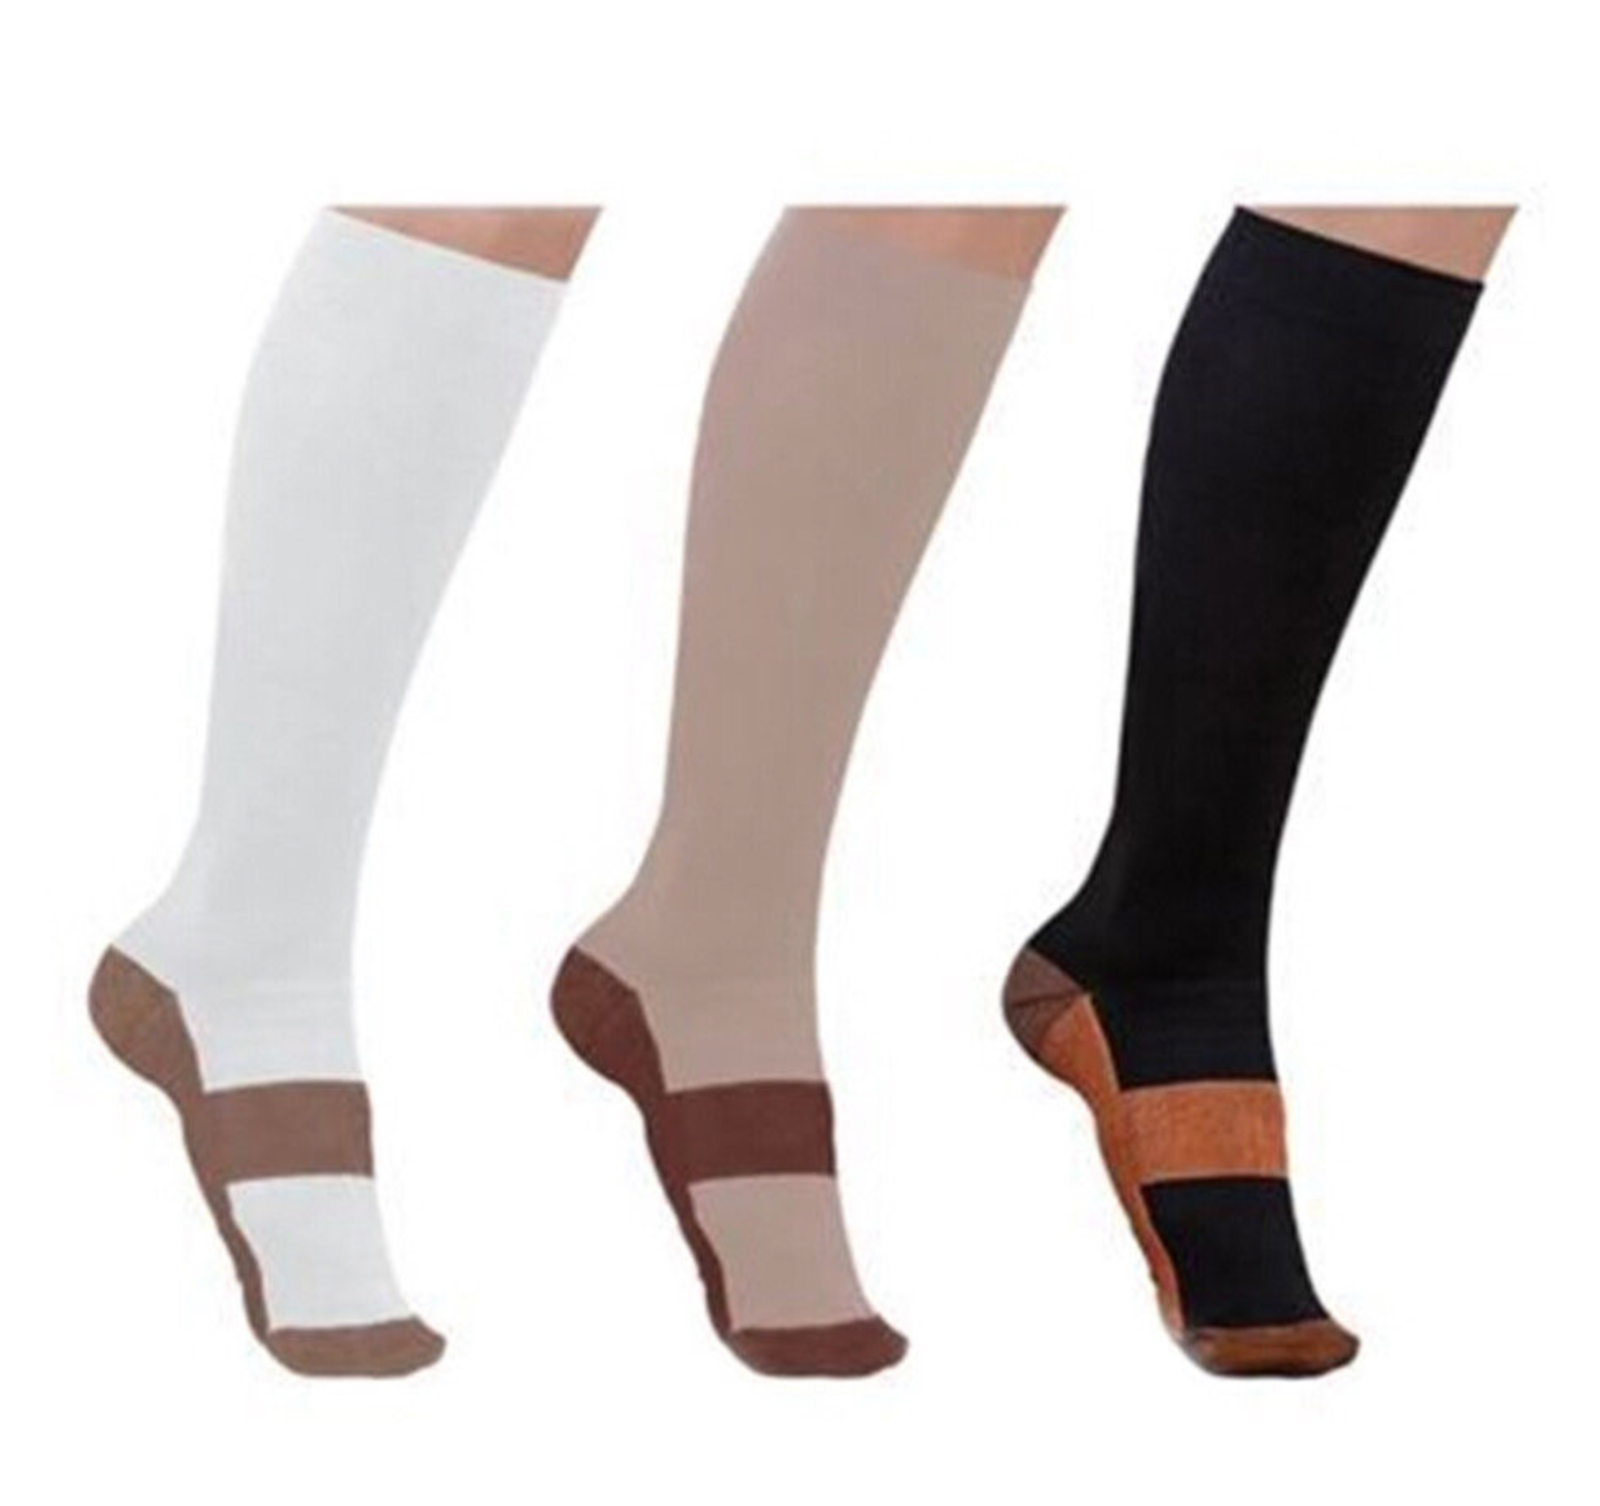 Copper Compression Stockings 20-30mmHg Support Socks Miracle Calf Men's Women's 5